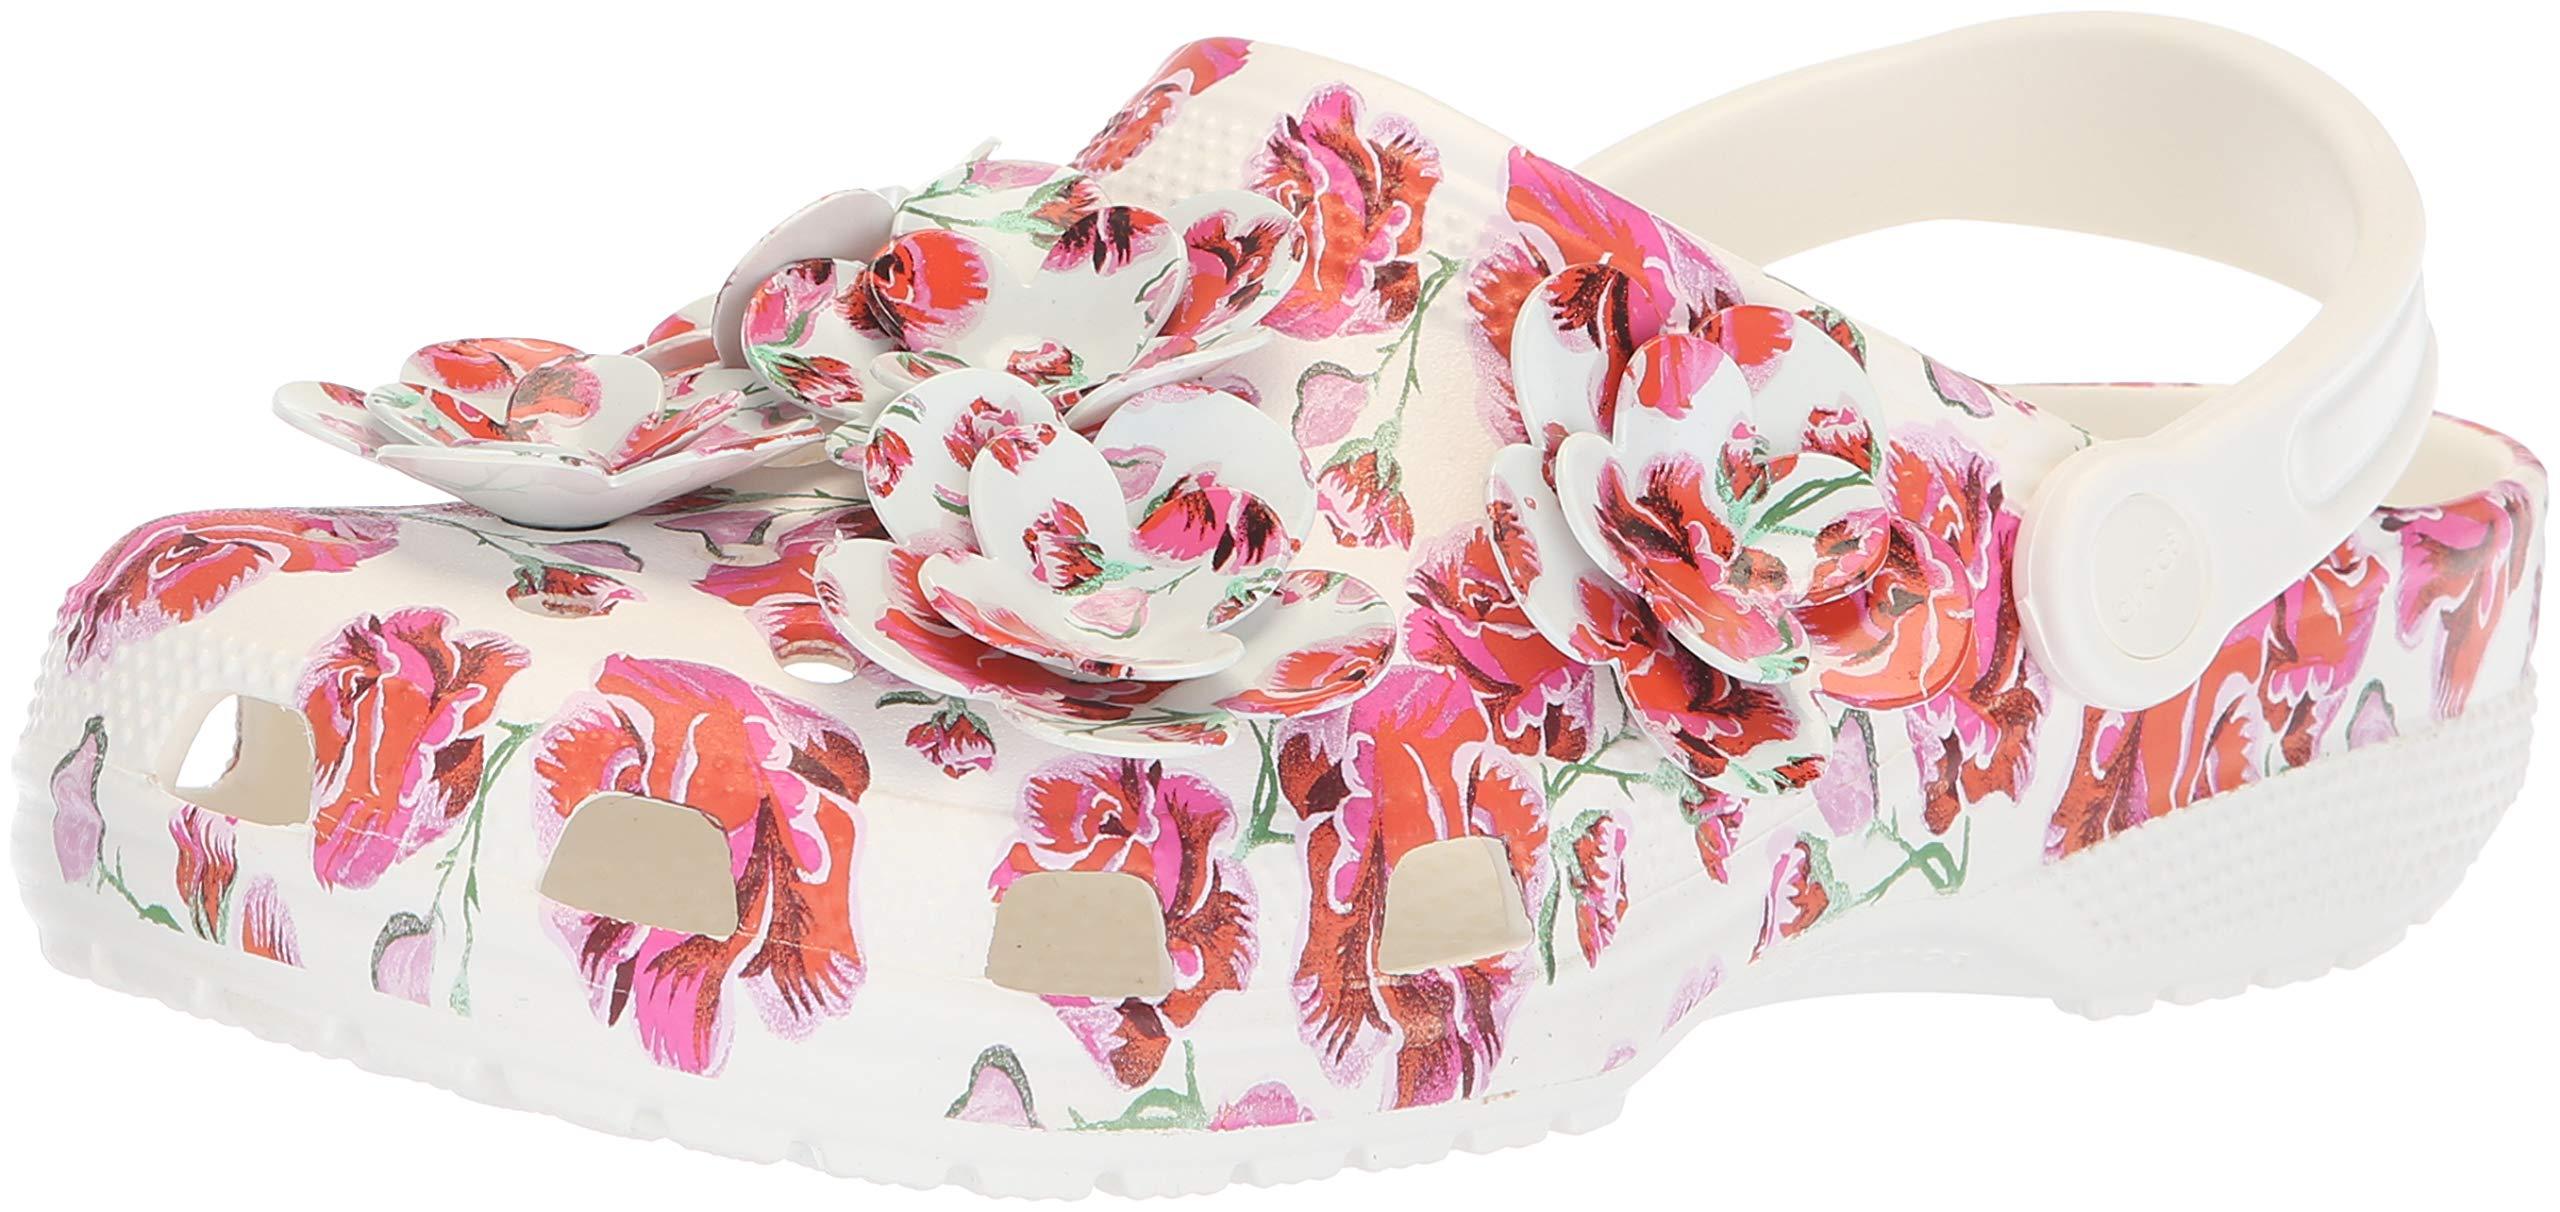 Crocs Classic Timeless Clash Roses Clog, Floral/White, 5 US Men / 7 US Women